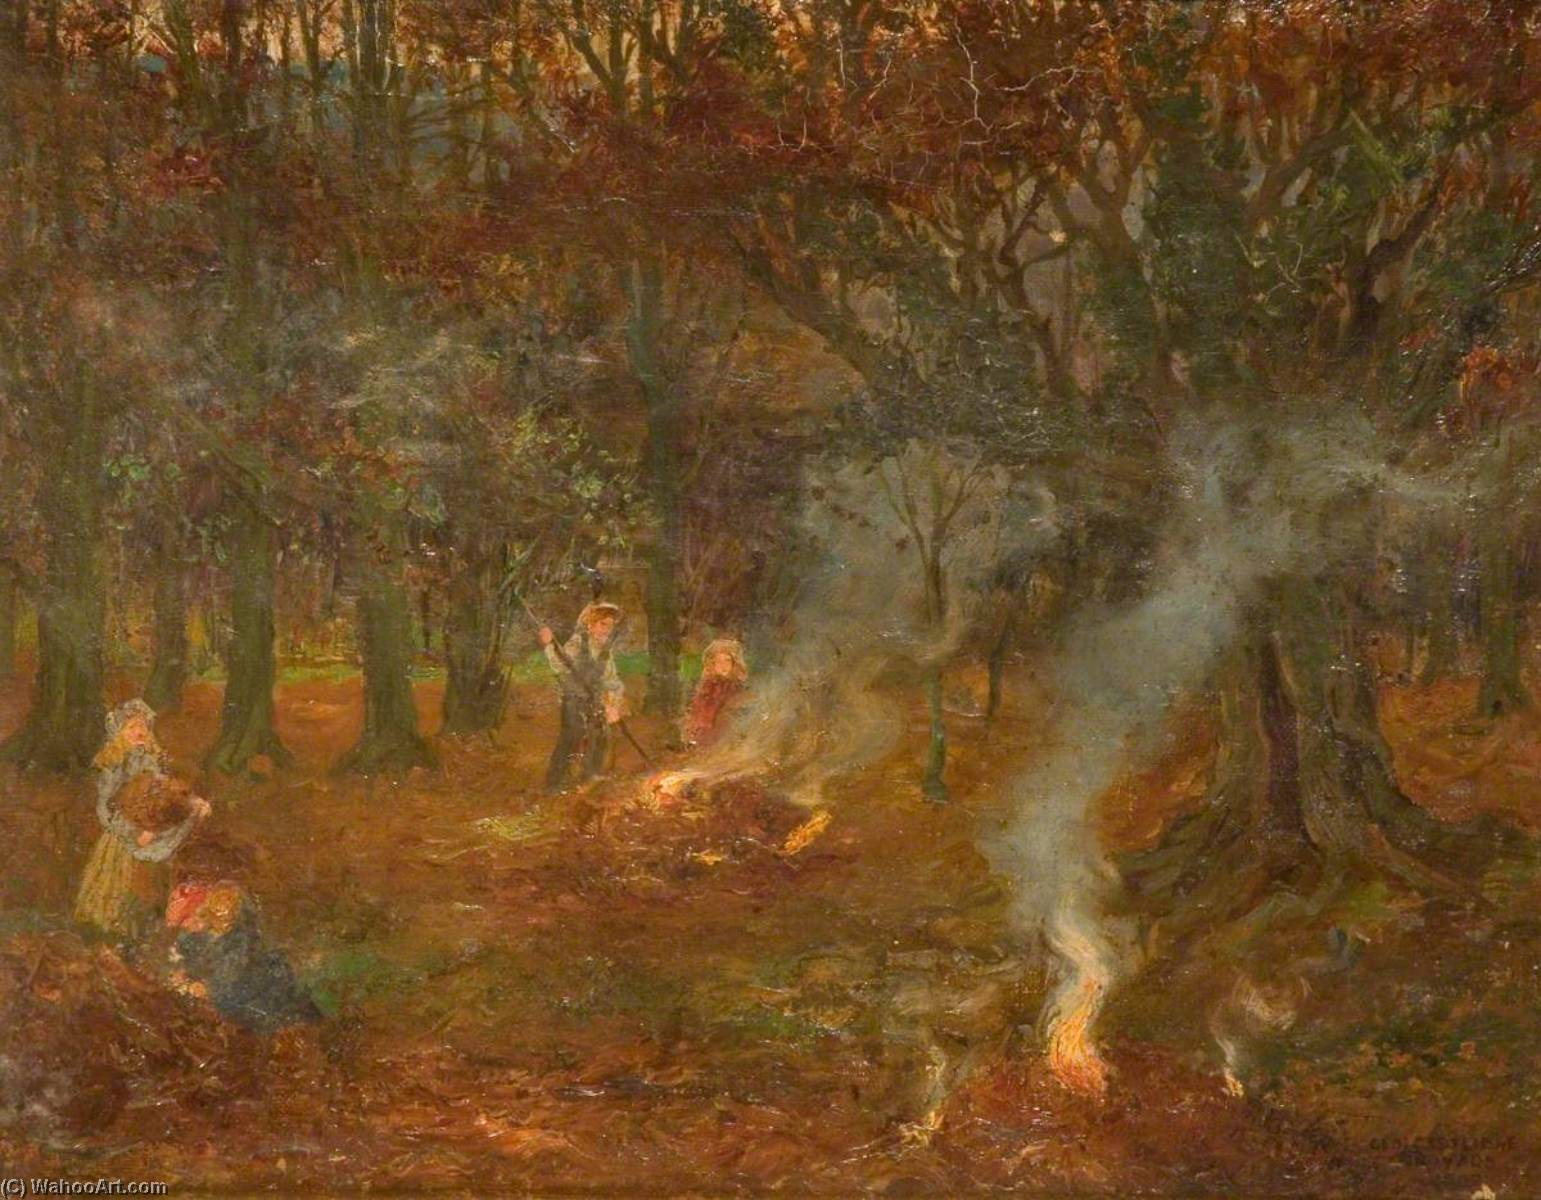 Burning Autumn Leaves, 1902 by George Cartlidge | Art Reproduction | WahooArt.com